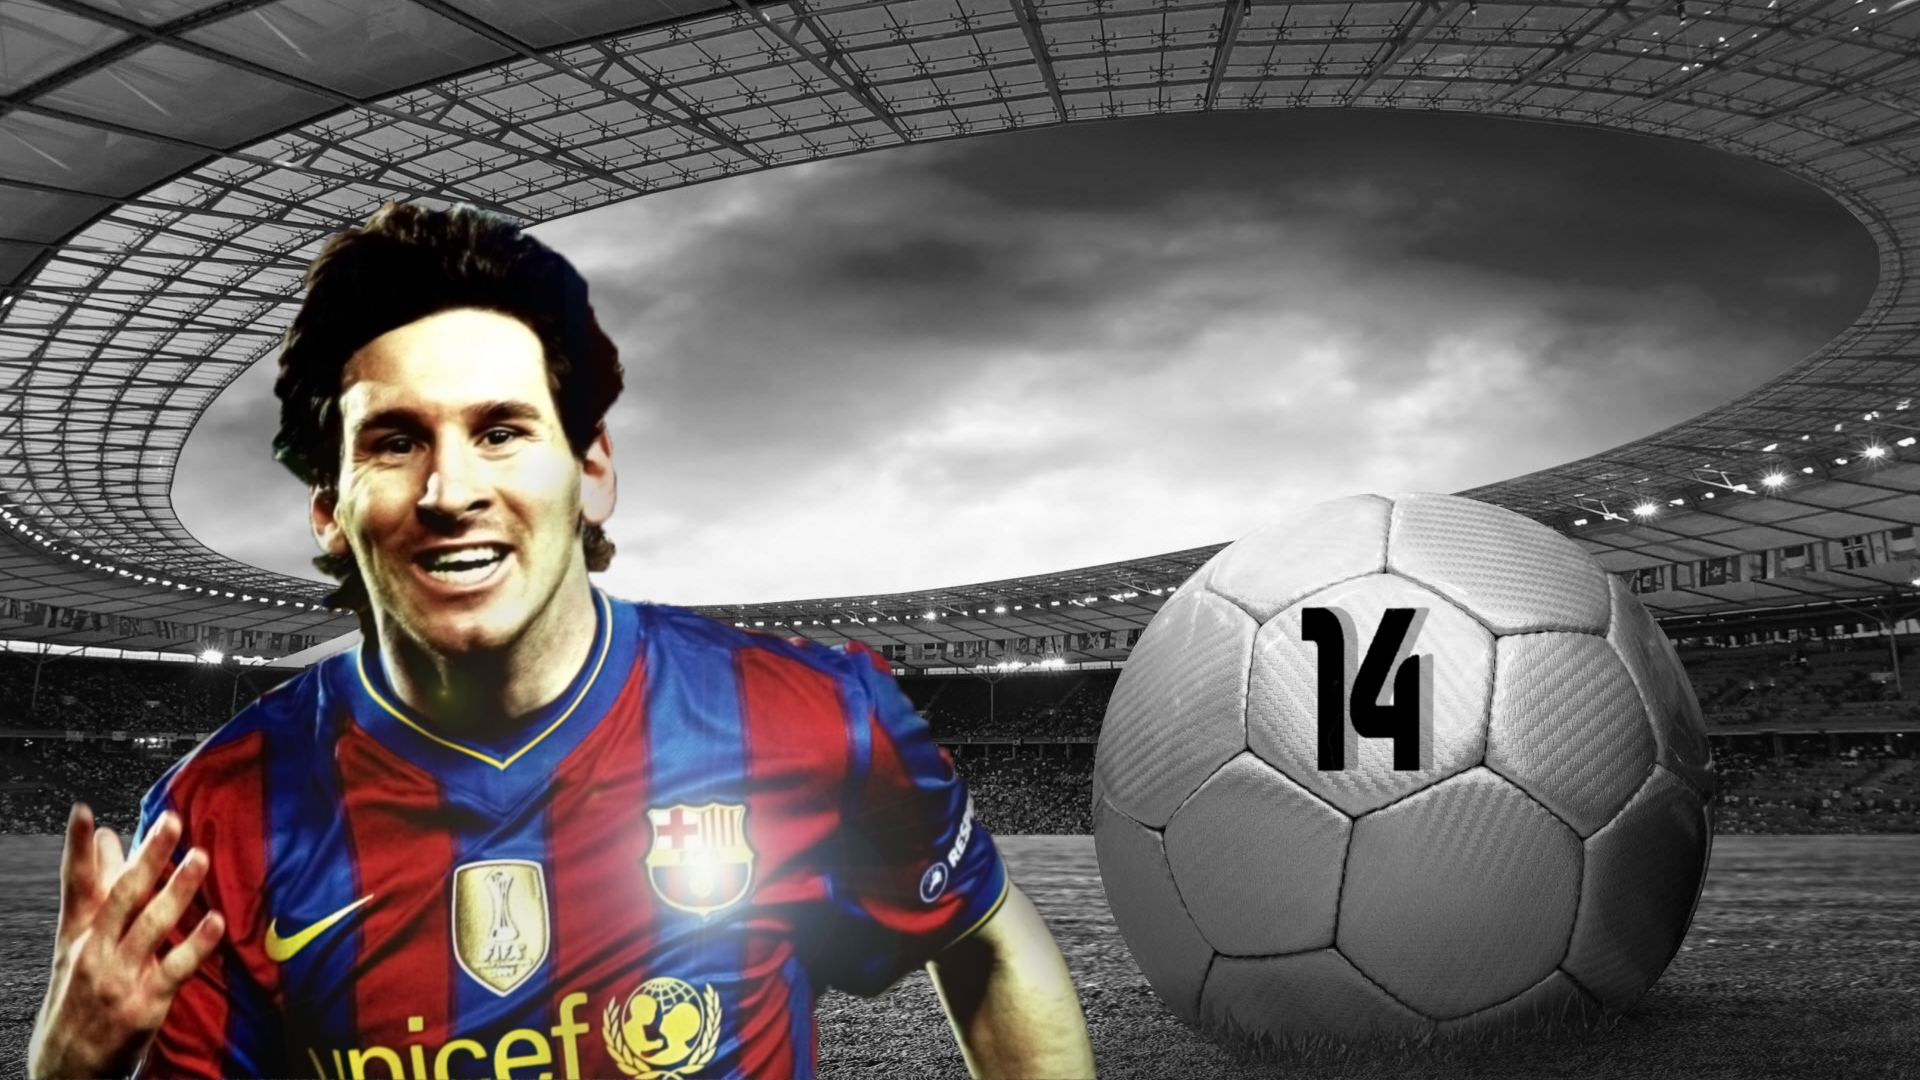 FIFA 14 HD Wallpapers: Download Stunning HD Wallpapers